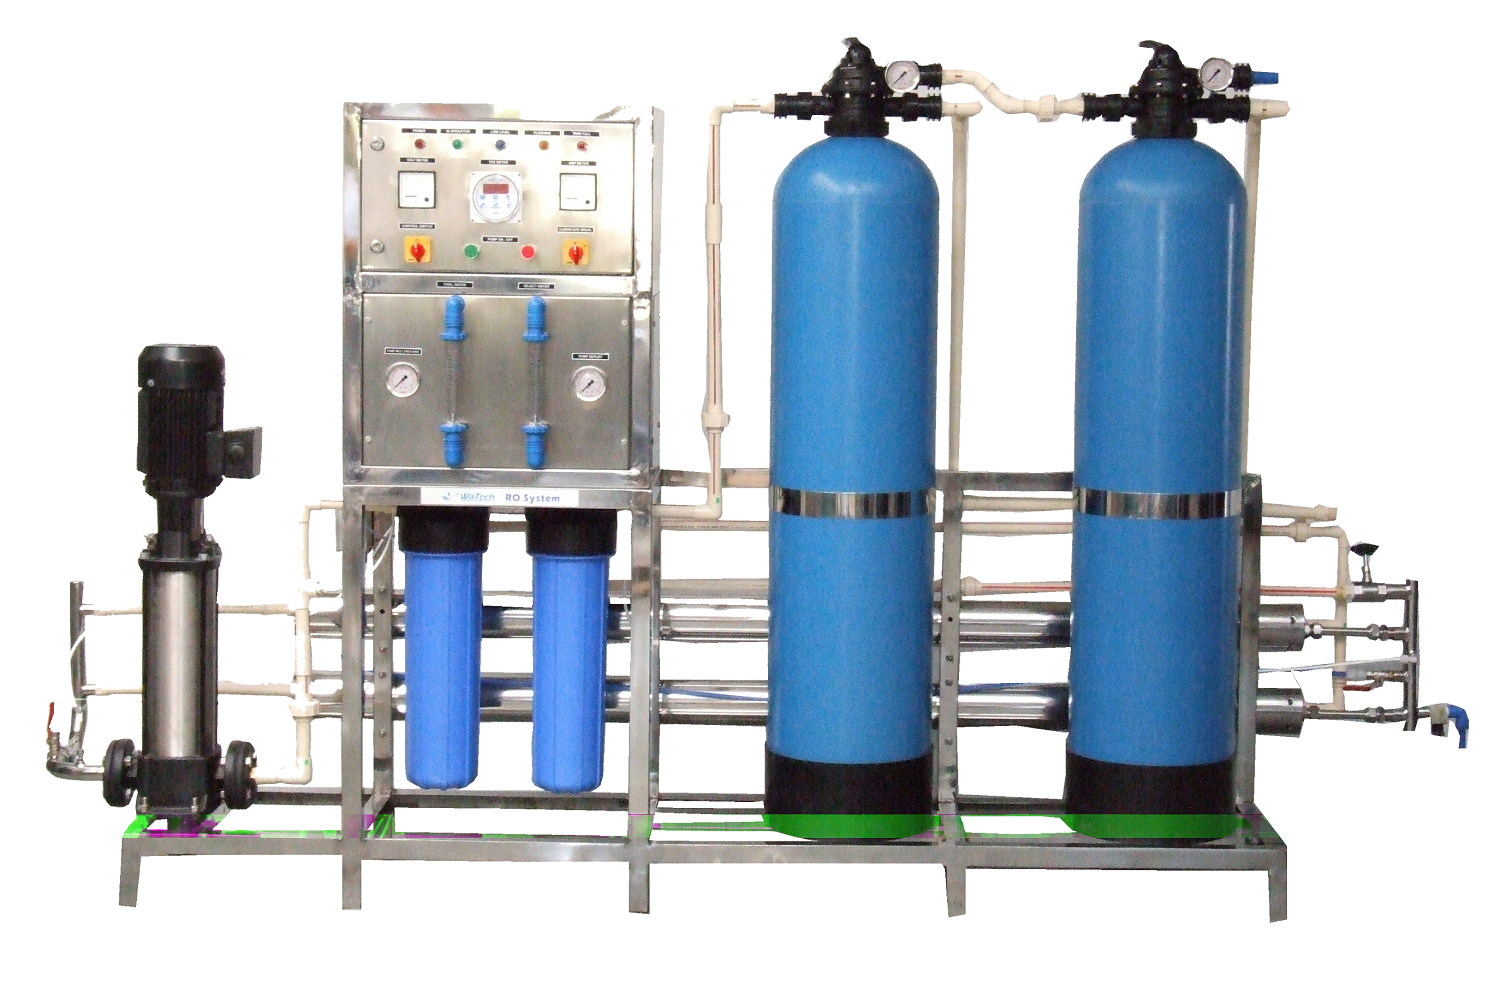 Commercial Ro Water Purifier Are One Of The Best Heavy Duty Plant Which Use Carbon Water Filters In Purifiers To Water Treatment Plant Water Treatment Ro Plant